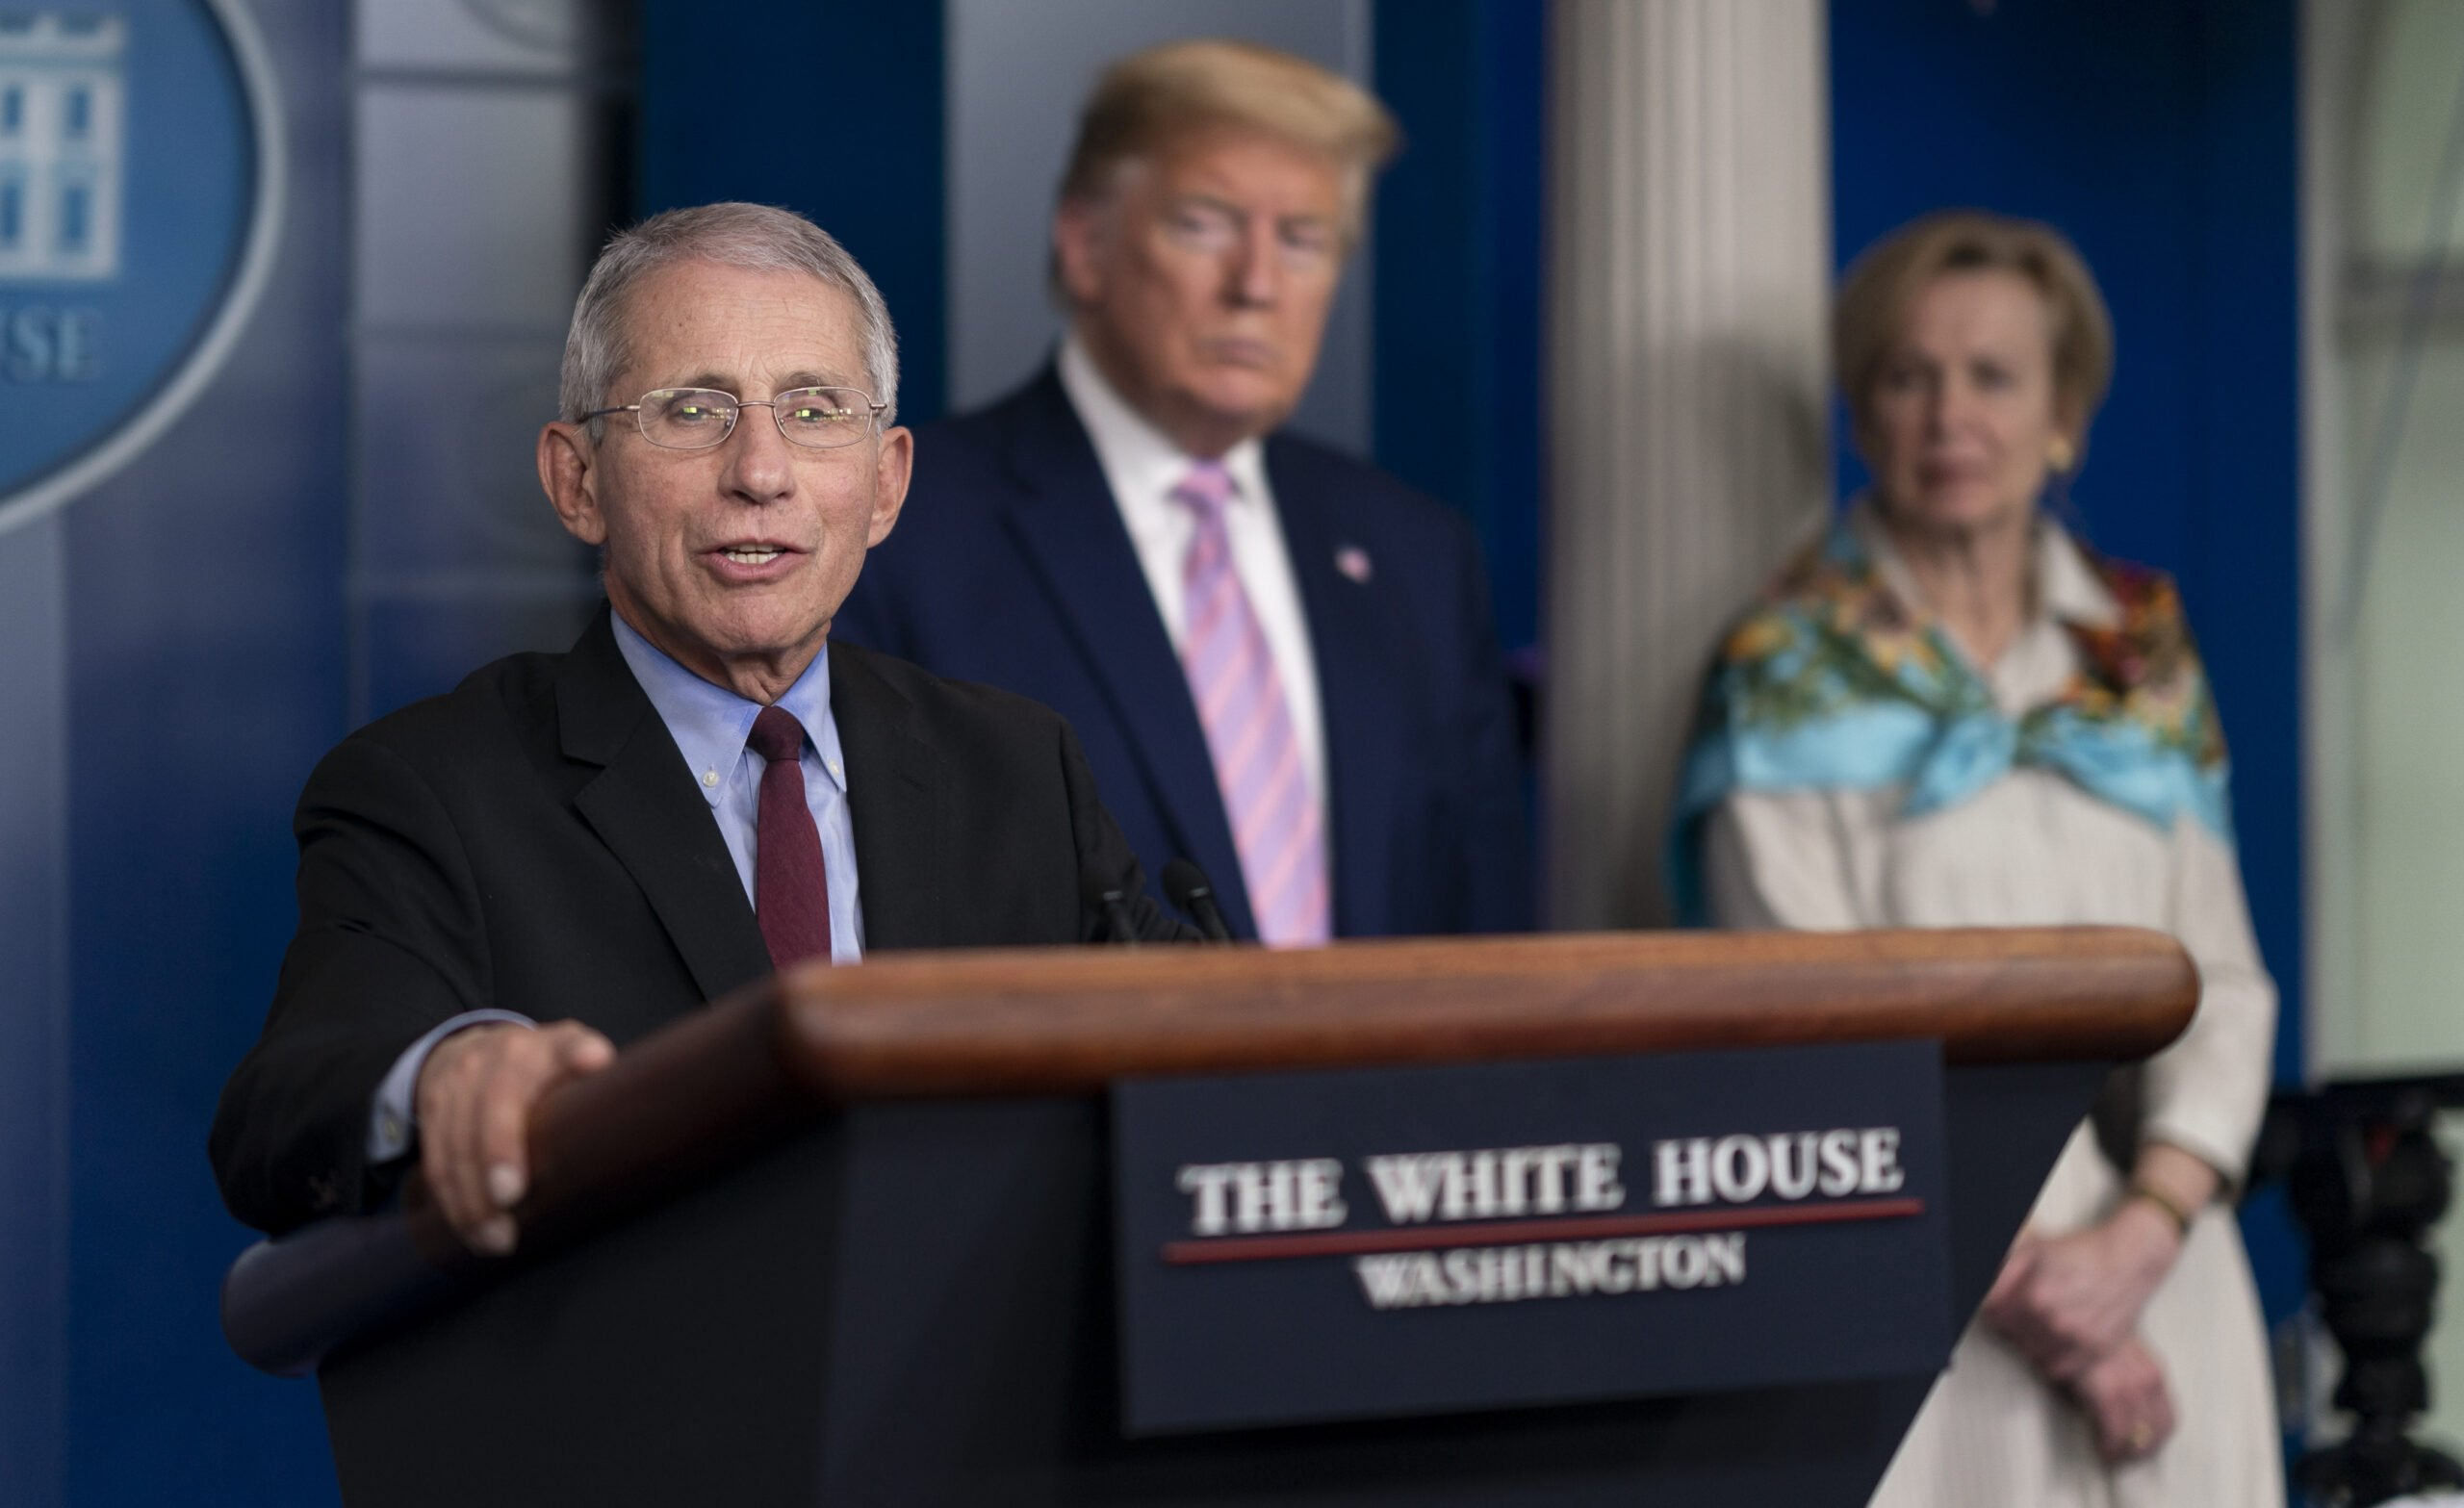 Dr. Anthony S. Fauci delivers remarks at a coronavirus update briefing Saturday, April 4, 2020 (Official White House Photo by Andrea Hanks)